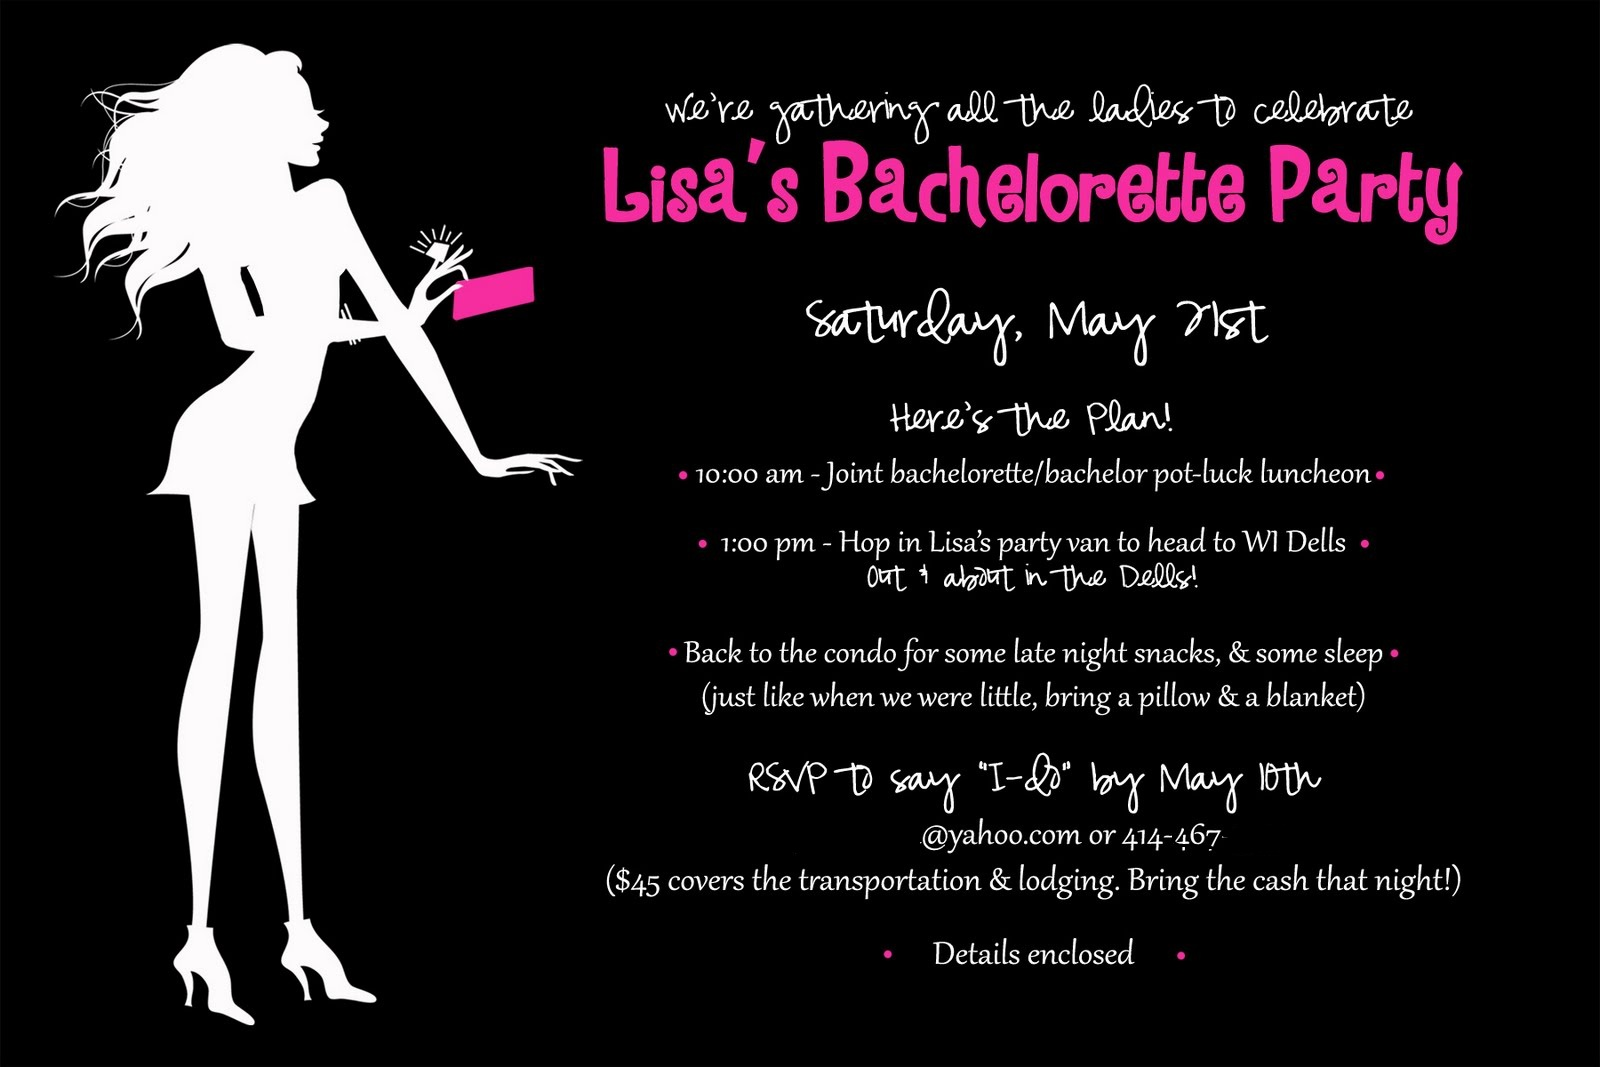 Project Celebration Sexy Silhouette Bachelorette Party Invitation – Bachelorette Party Invitation Templates